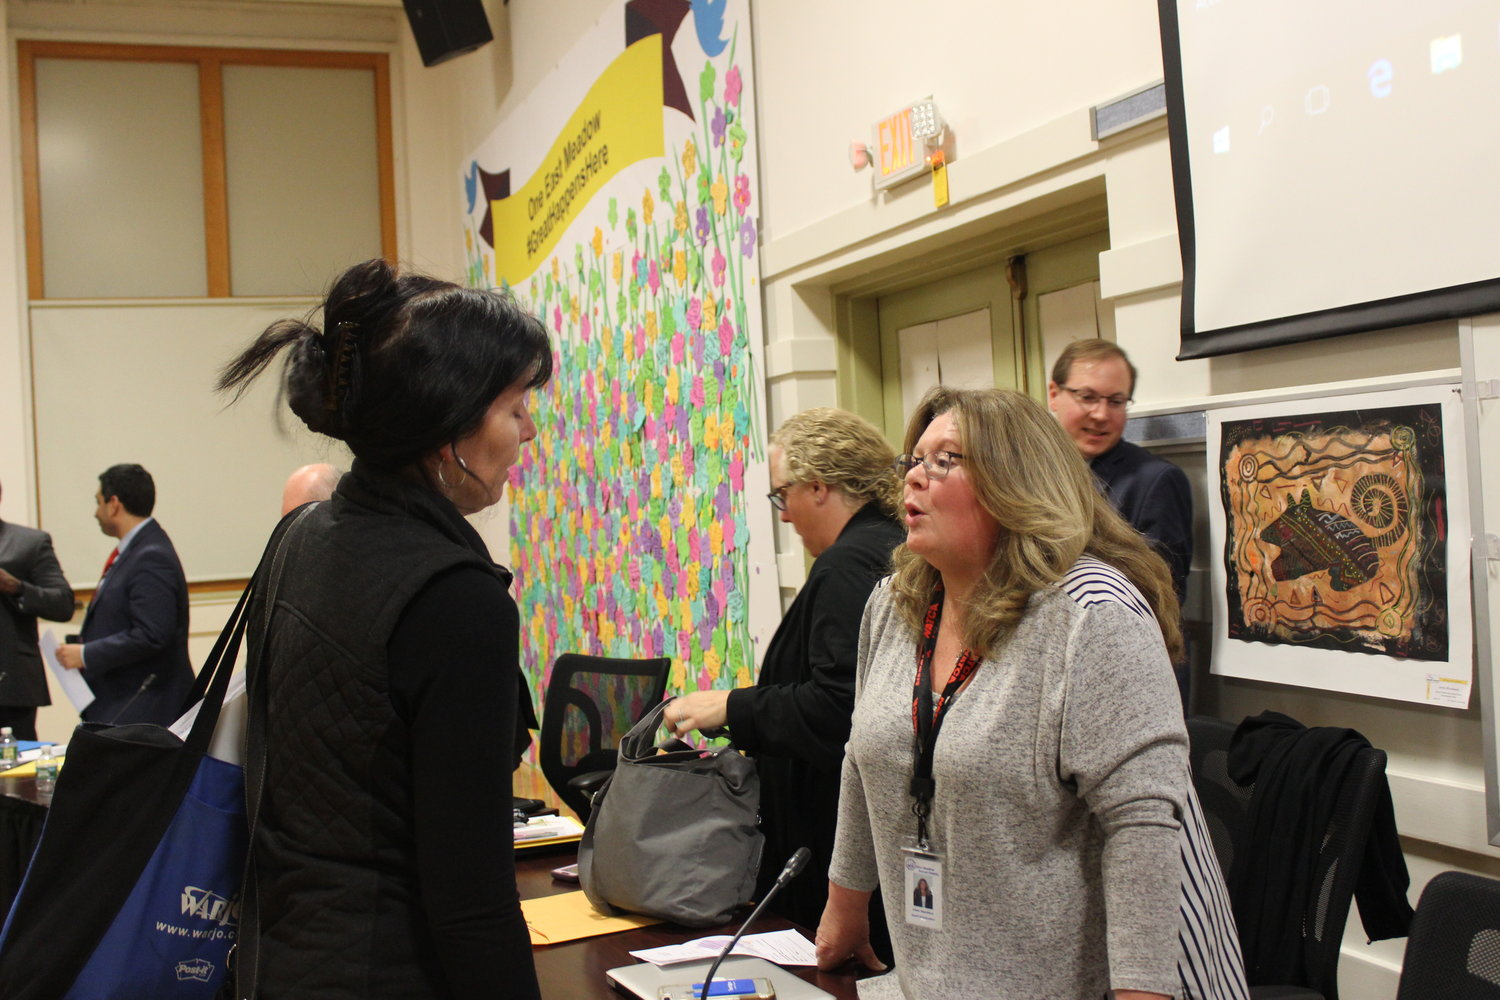 Trustee Eileen Napolitano thanked a district parent who advocated for increasing mental health education at a Board of Education meeting on April 10.